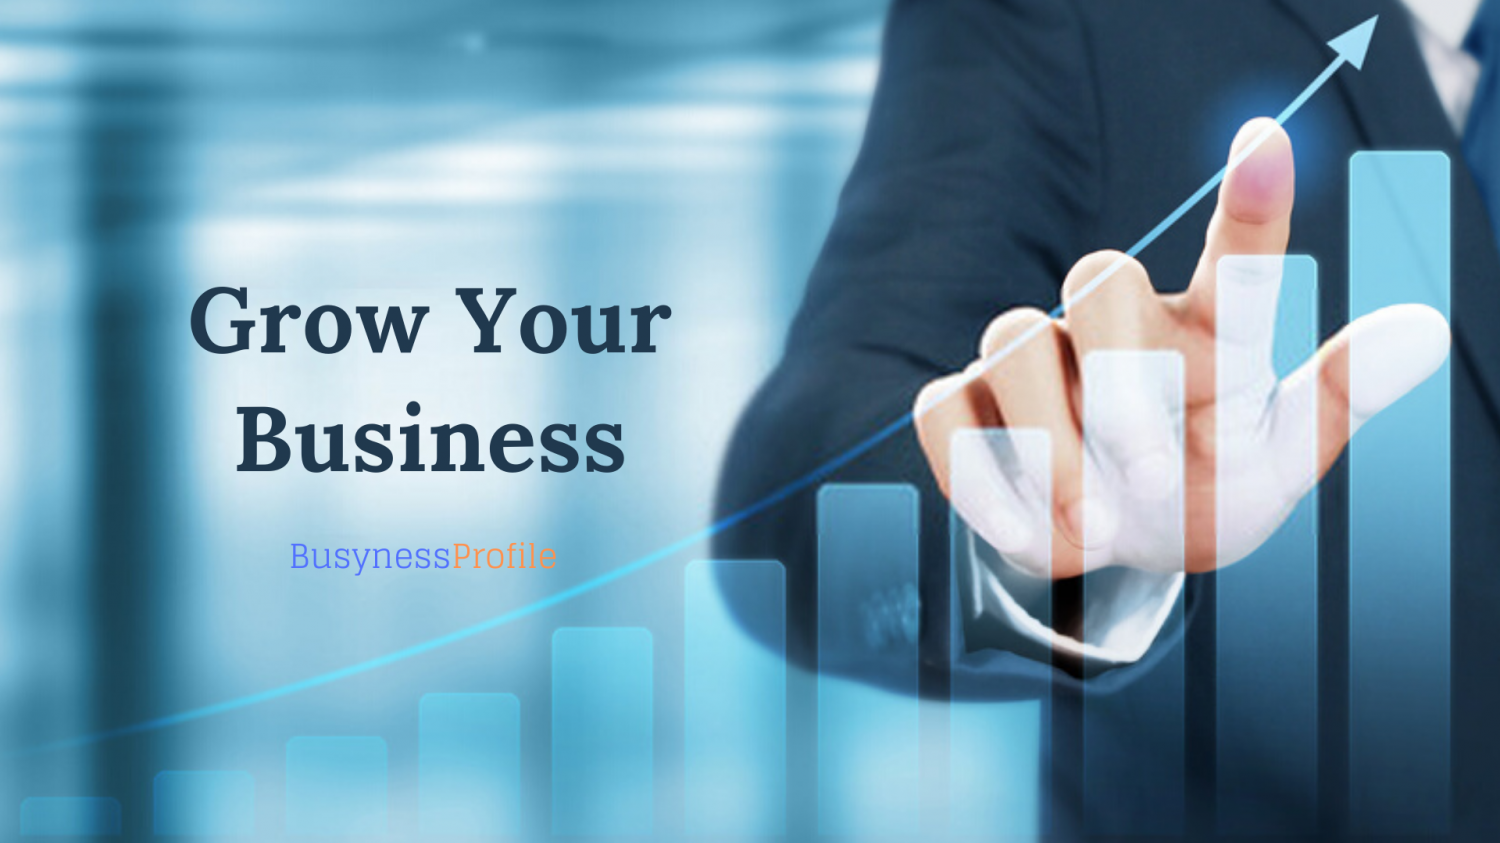 Grow Your Business With #BusynessProfile Infographic